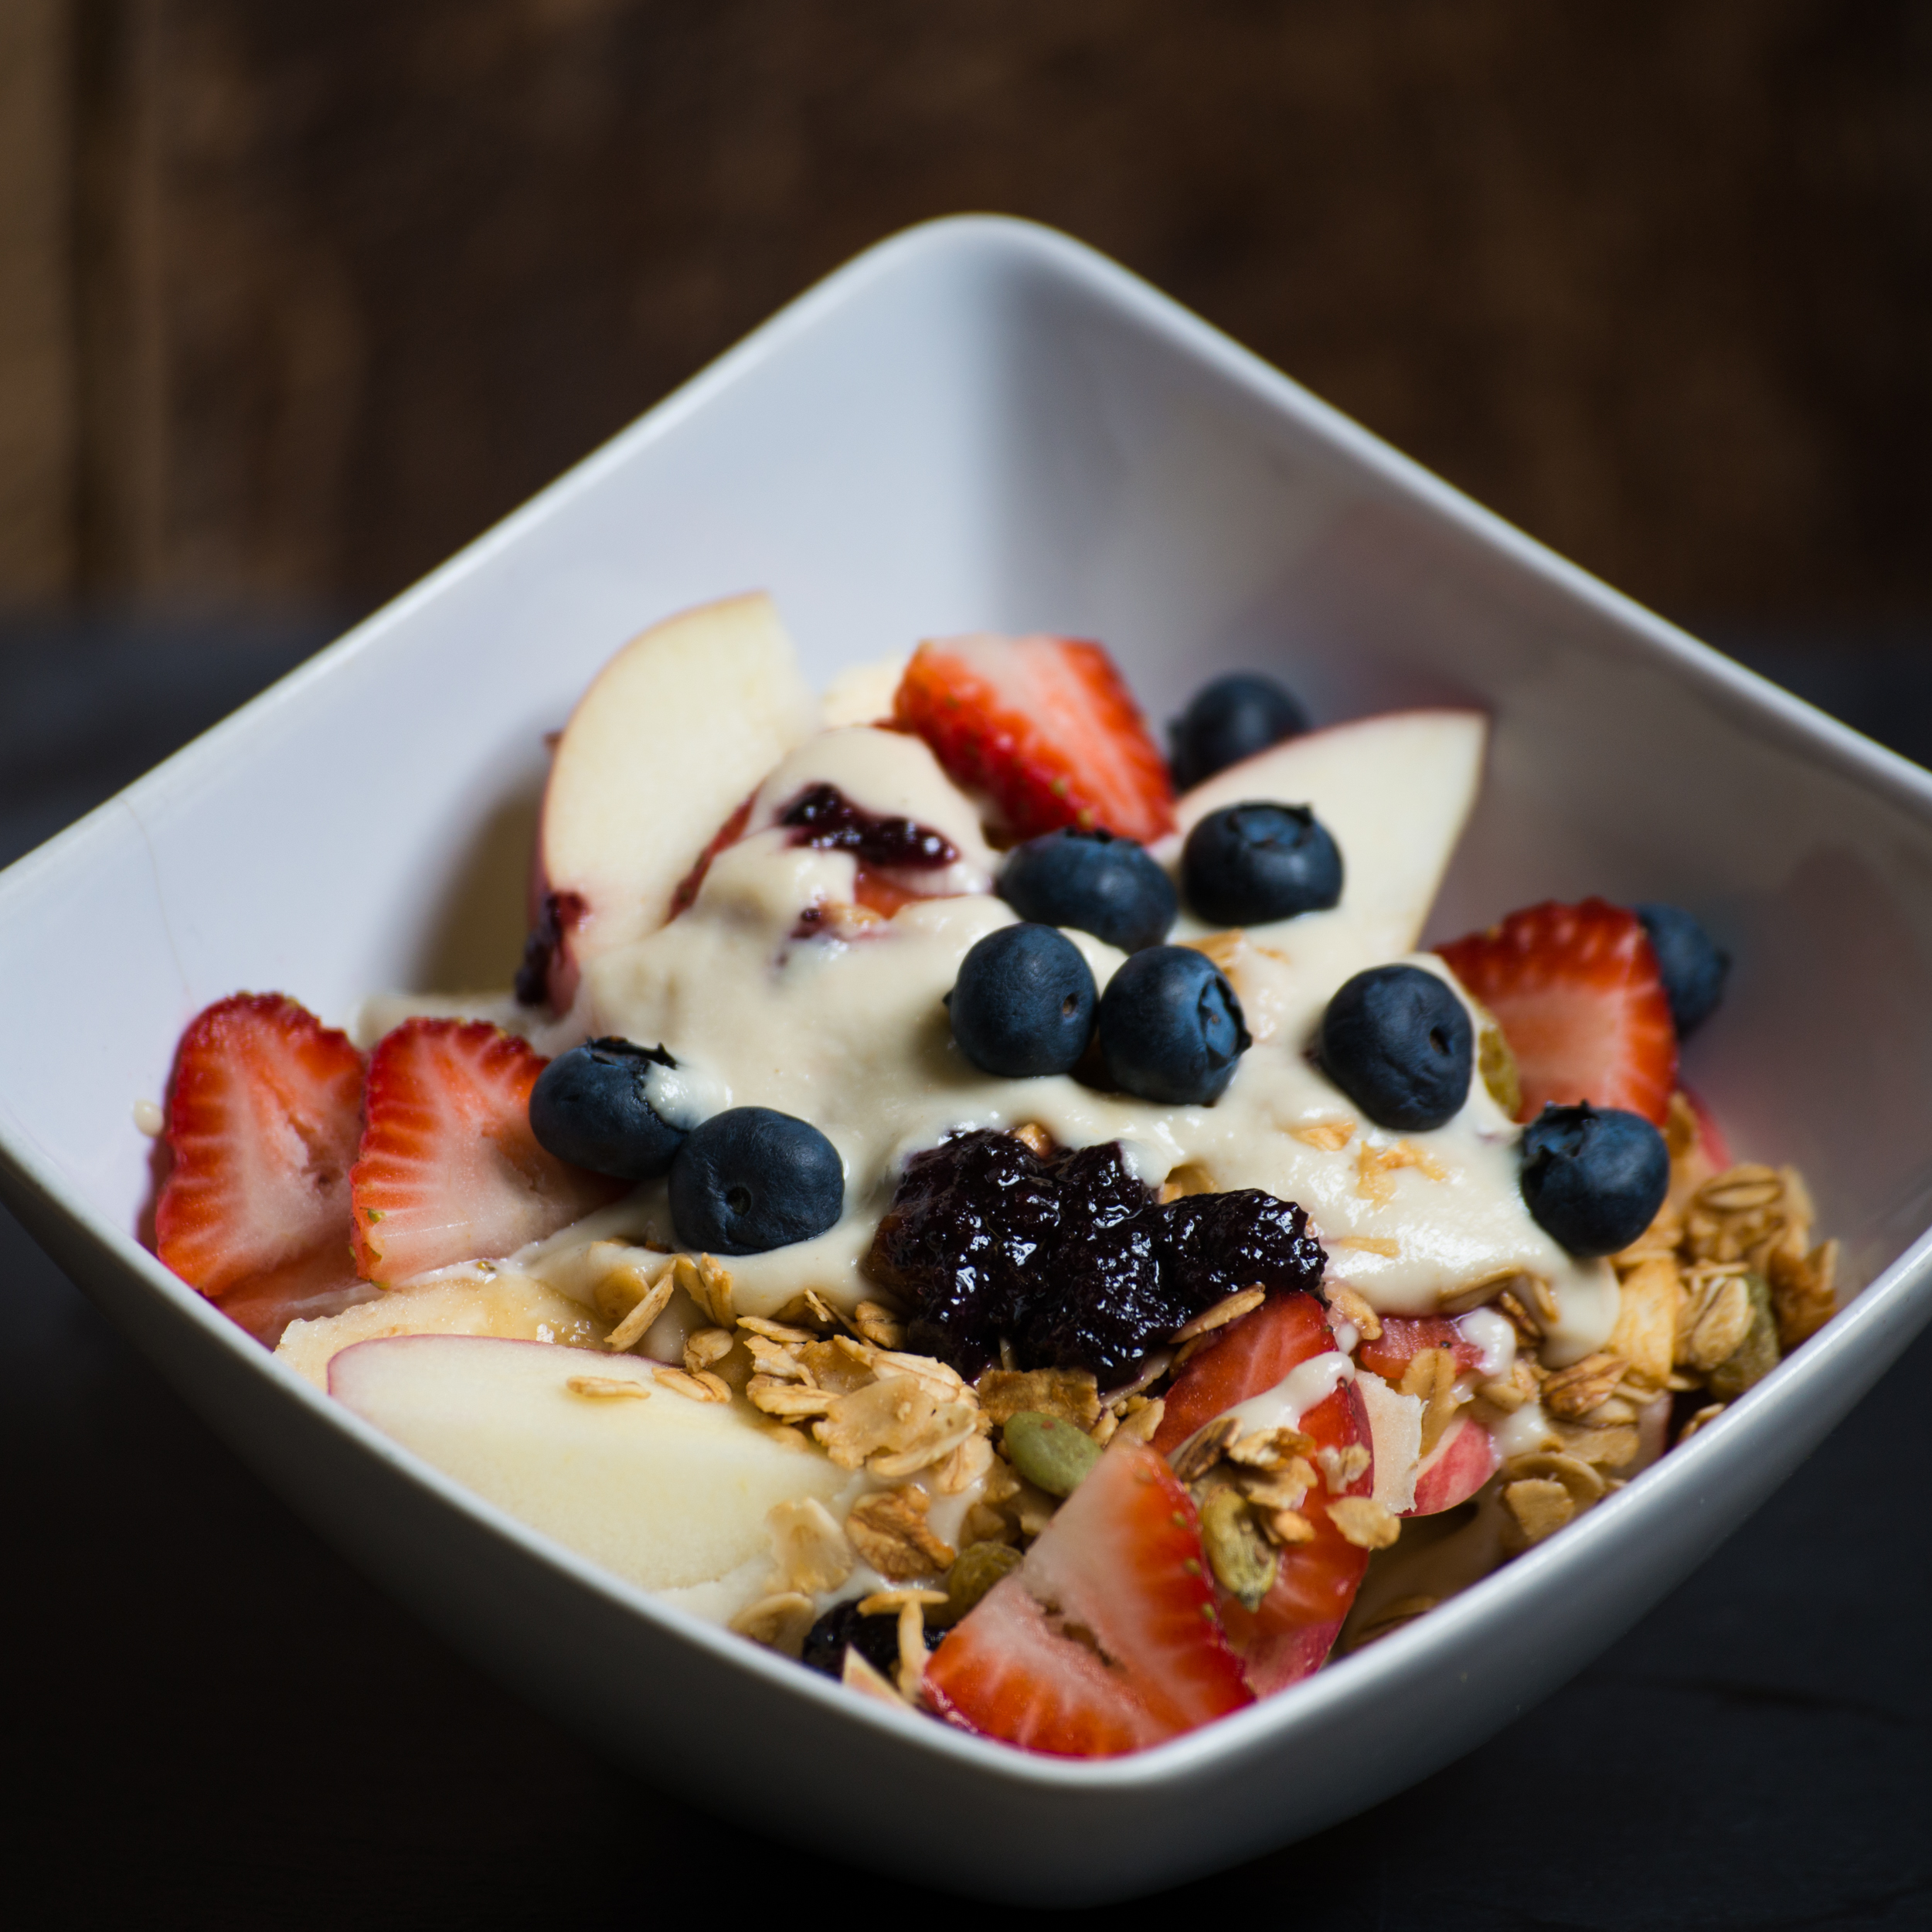 Sweet Cashew Cream Cheeze with apples, bananas, strawberries, blueberries, raw granola with pumpkin seeds.  Photo by Culcherd.